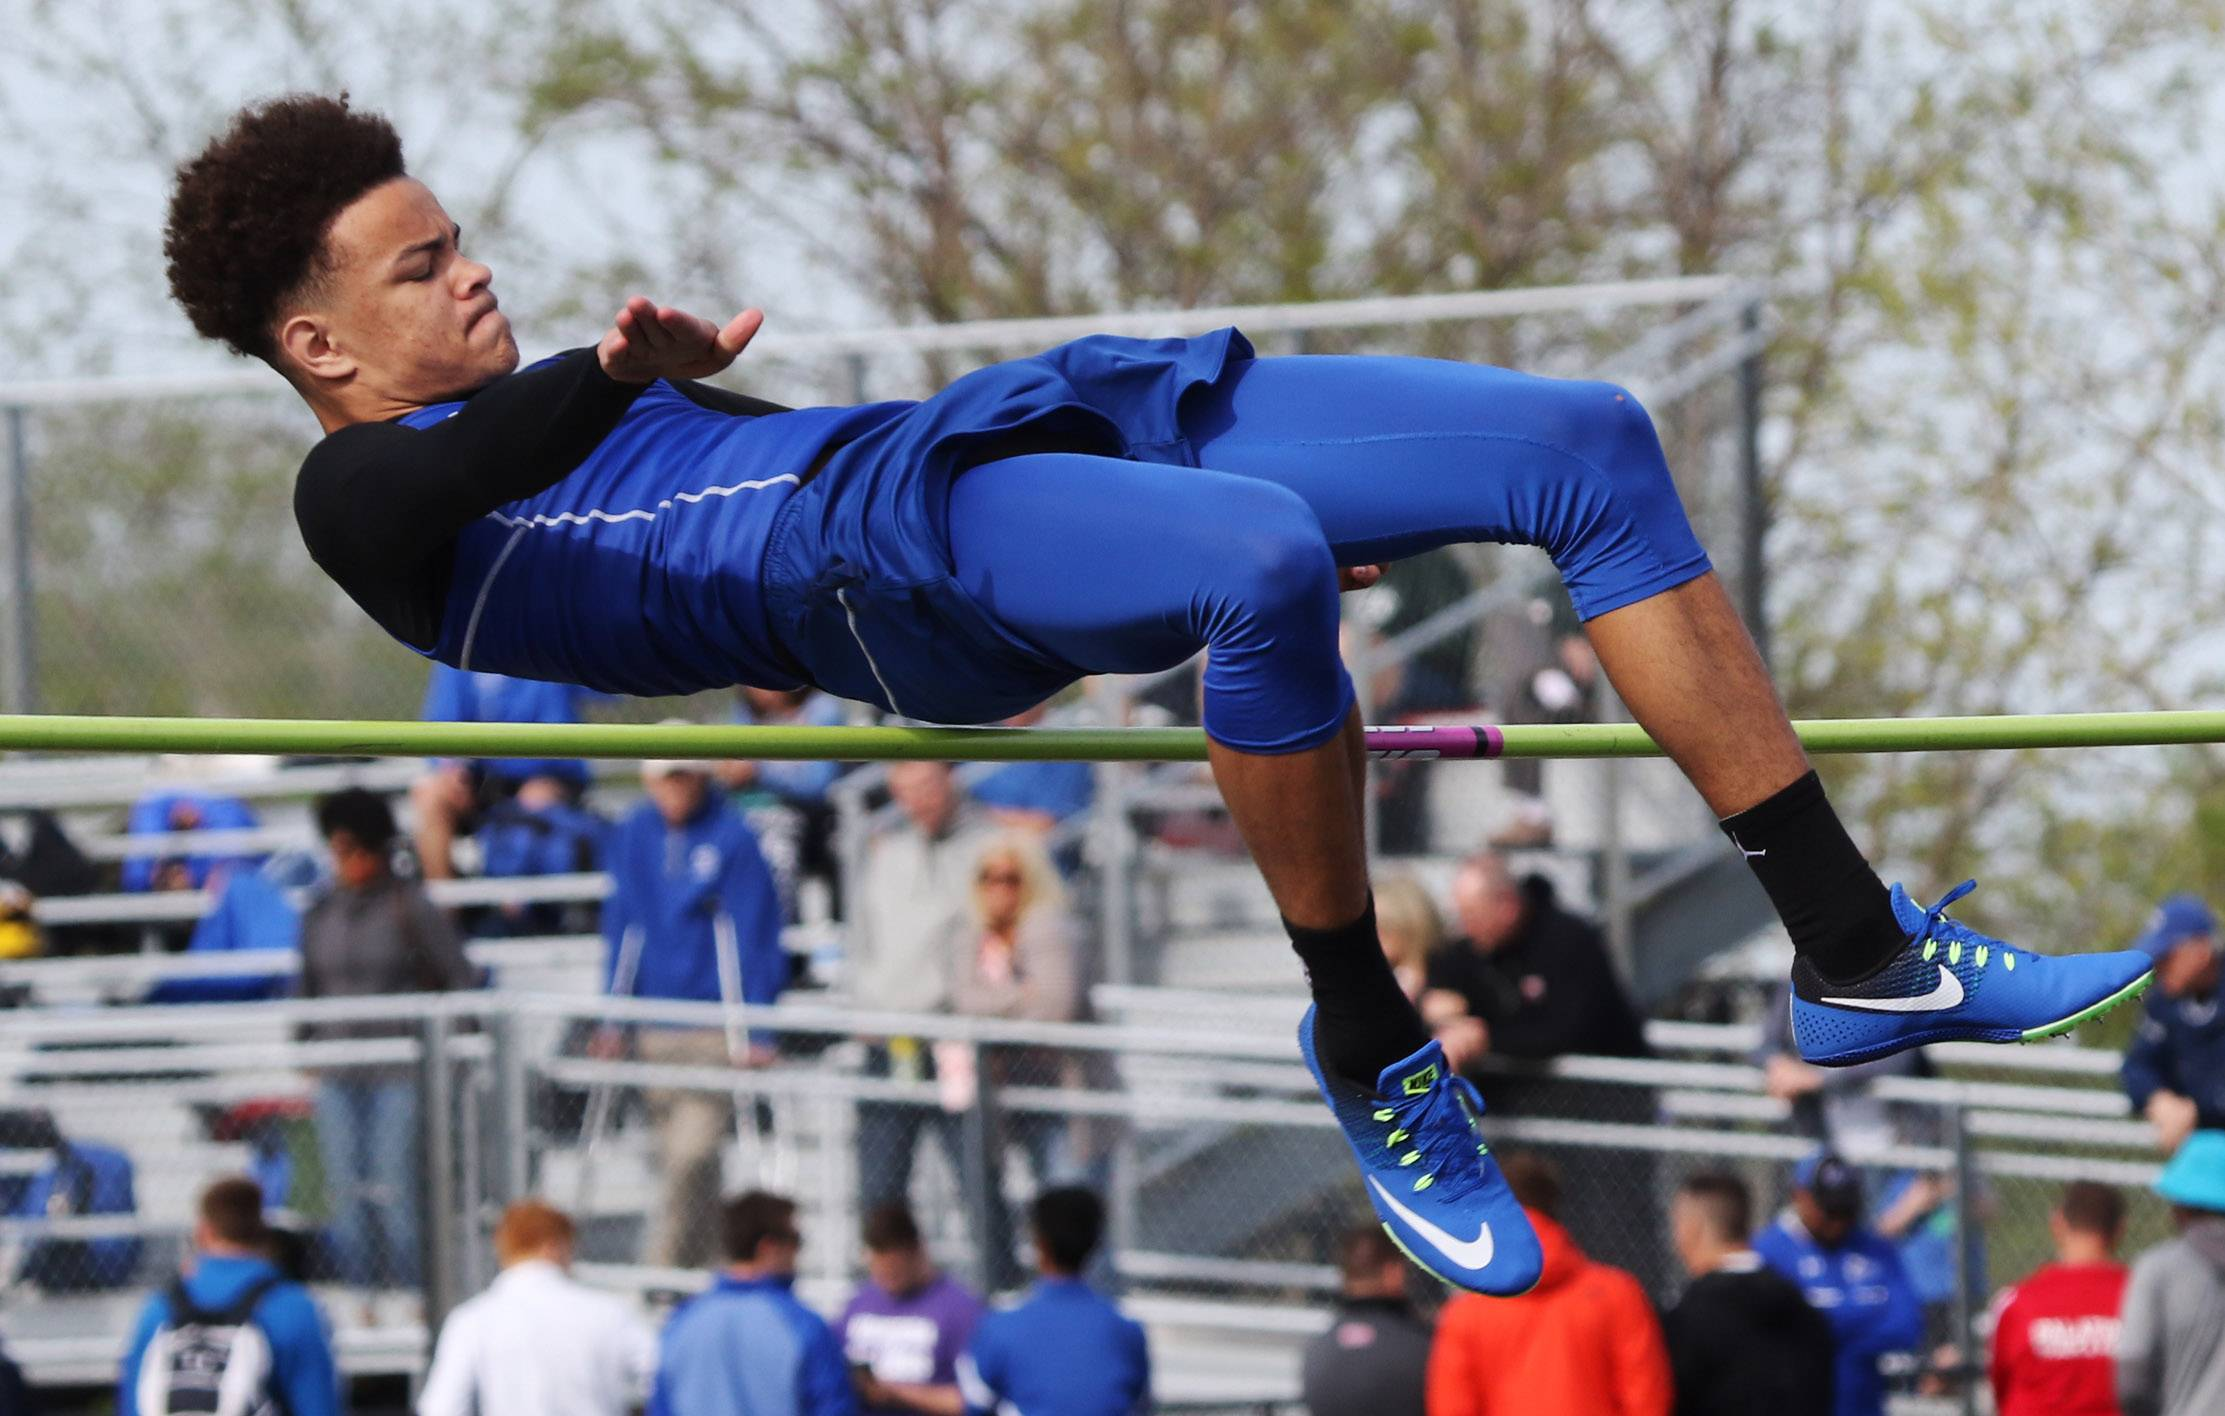 Warren high jumper Branden Ellis clears the bar at 6 feet, 3 inches during the Class 3A Grayslake North boys track sectional Thursday.